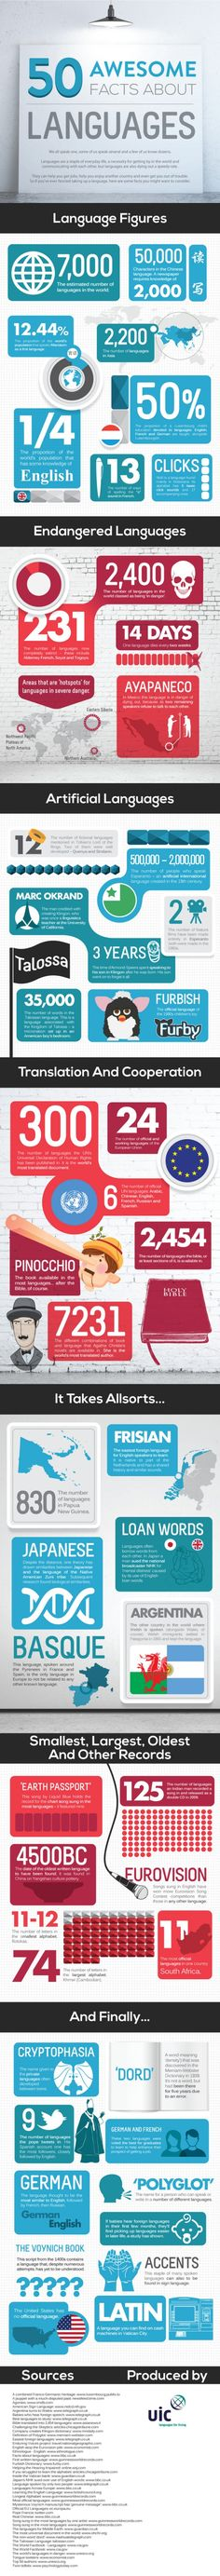 "Infographic: ""50 Awesome Facts About Languages"""